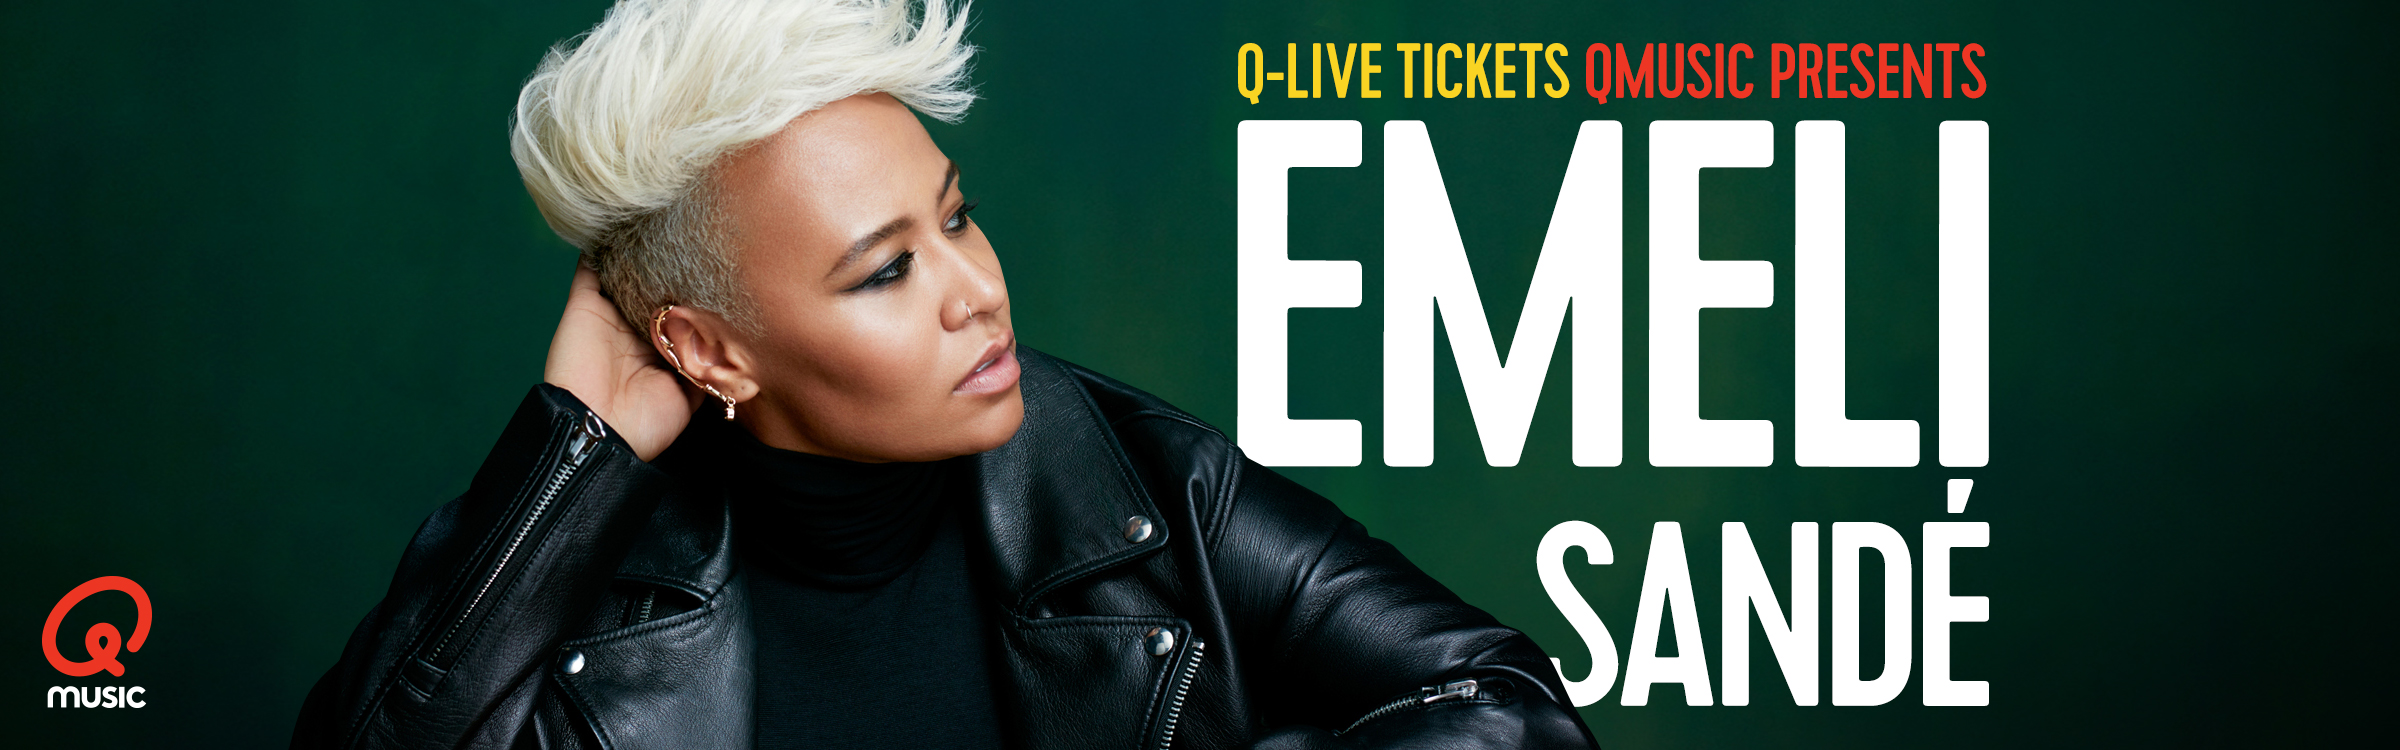 Qmusic actionheader emelisande